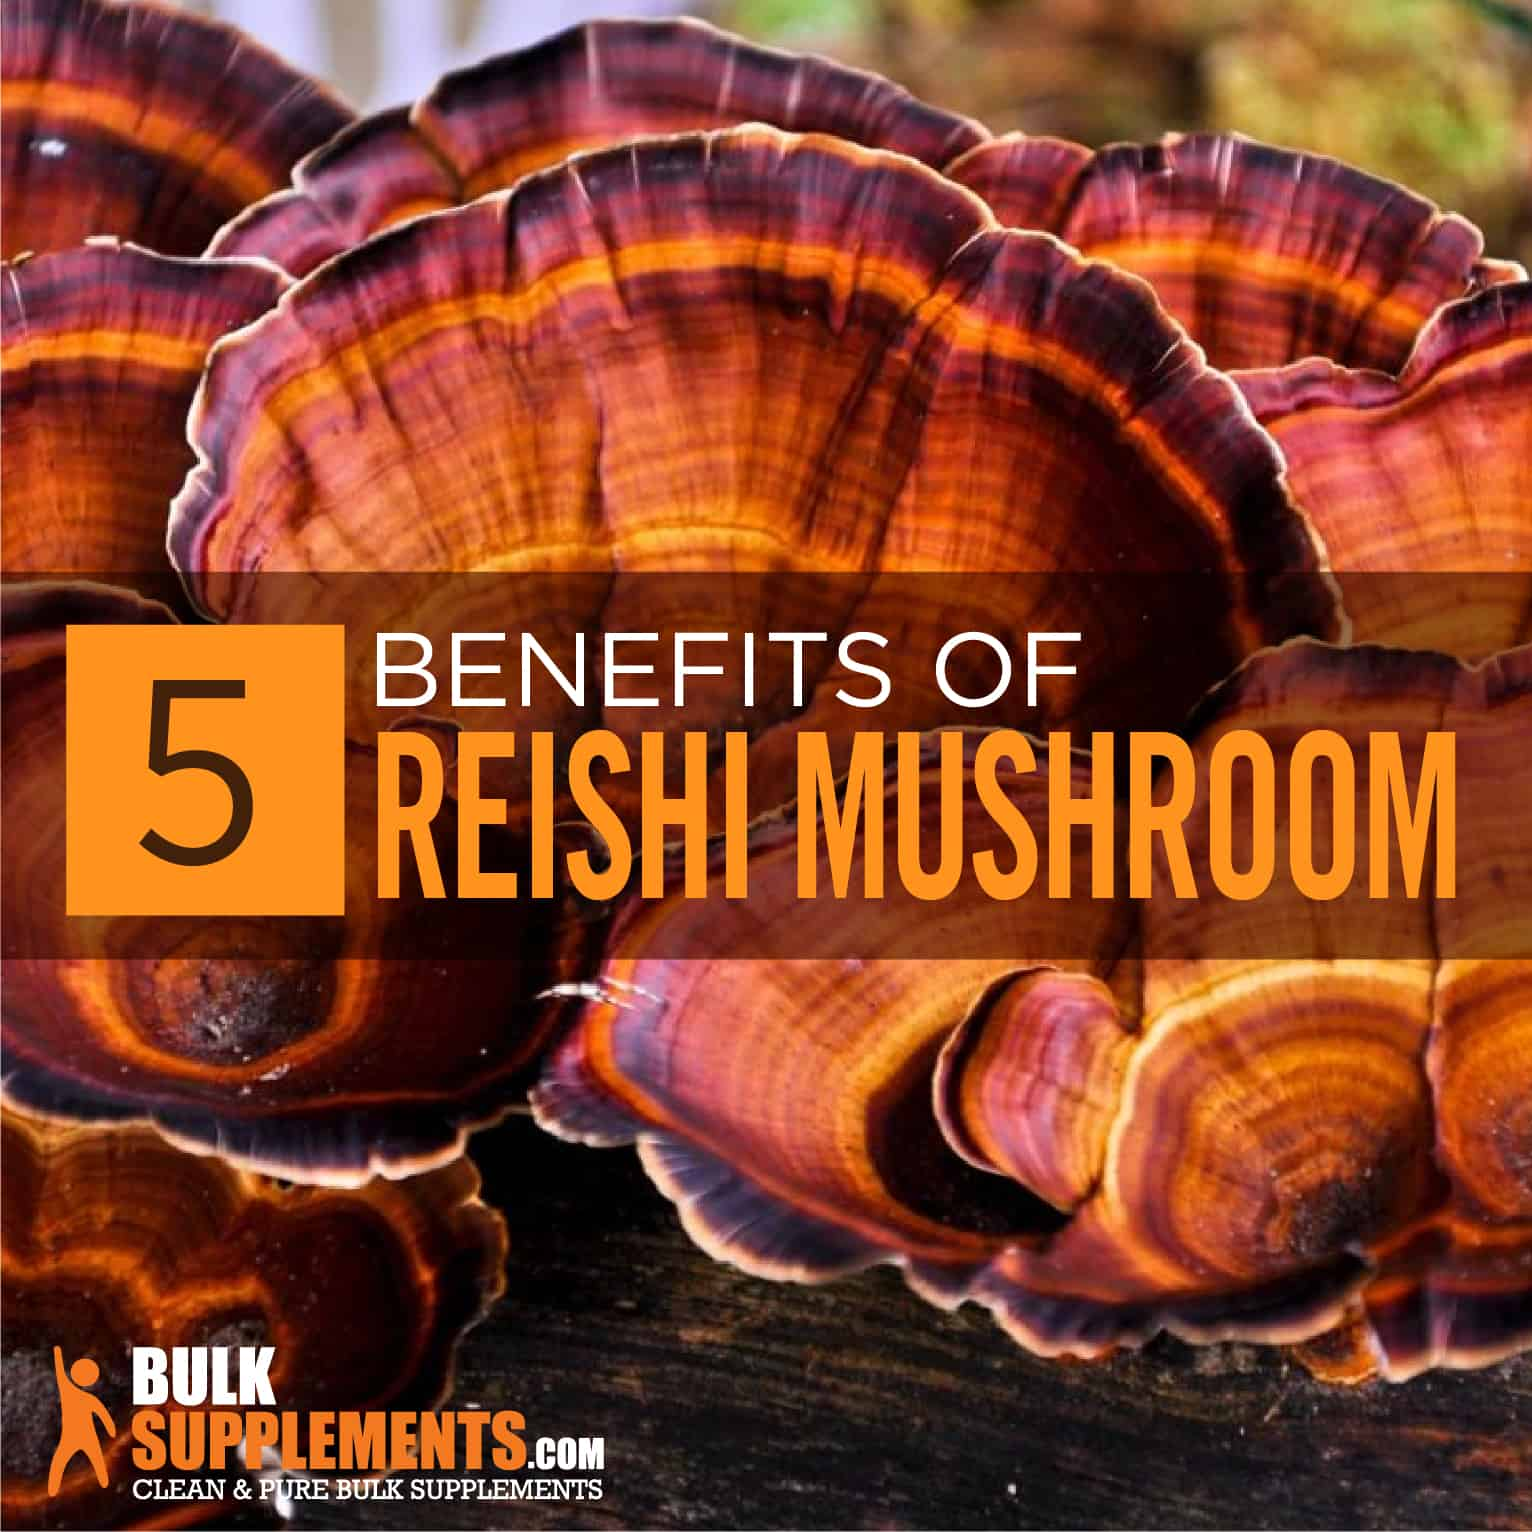 Reishi Mushroom Extract Benefits, Side Effects & Dosage